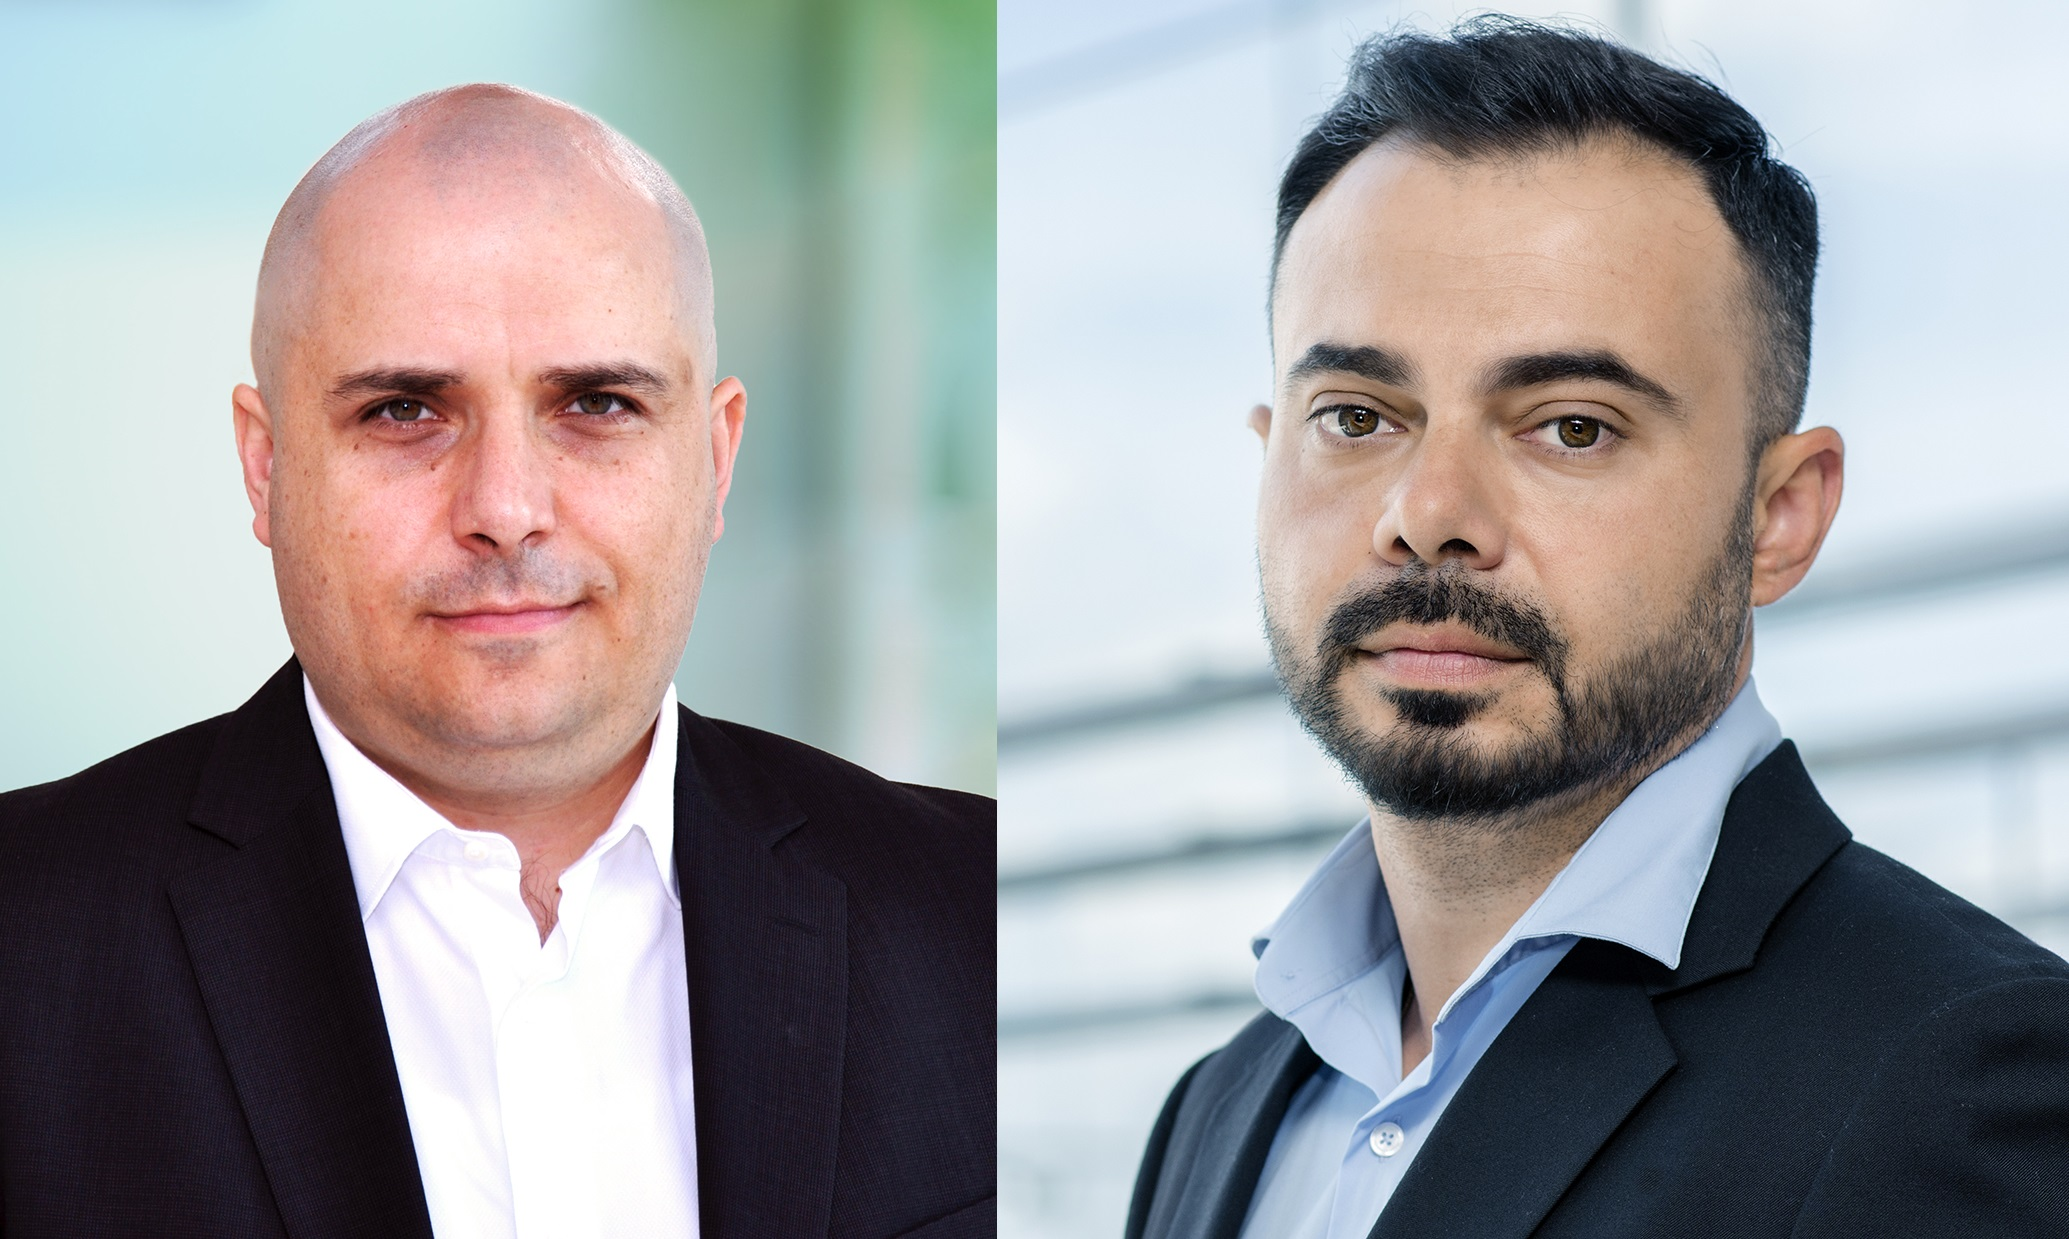 Gabriel Mihai Tanase, Partner, Technology & Cyber Security, and Horatiu Mihali, Audit Partner, will join KPMG in Romania's partners team from 1 October.